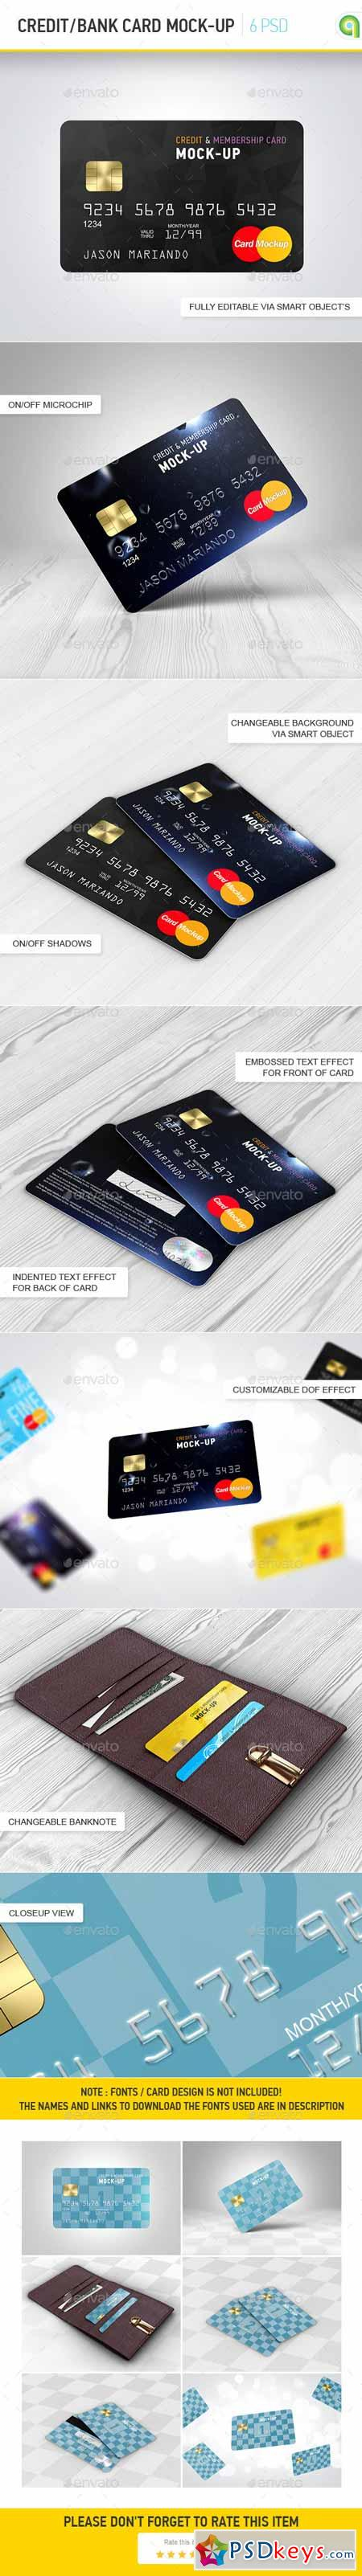 Credit Bank Card Mock-Up 9803458